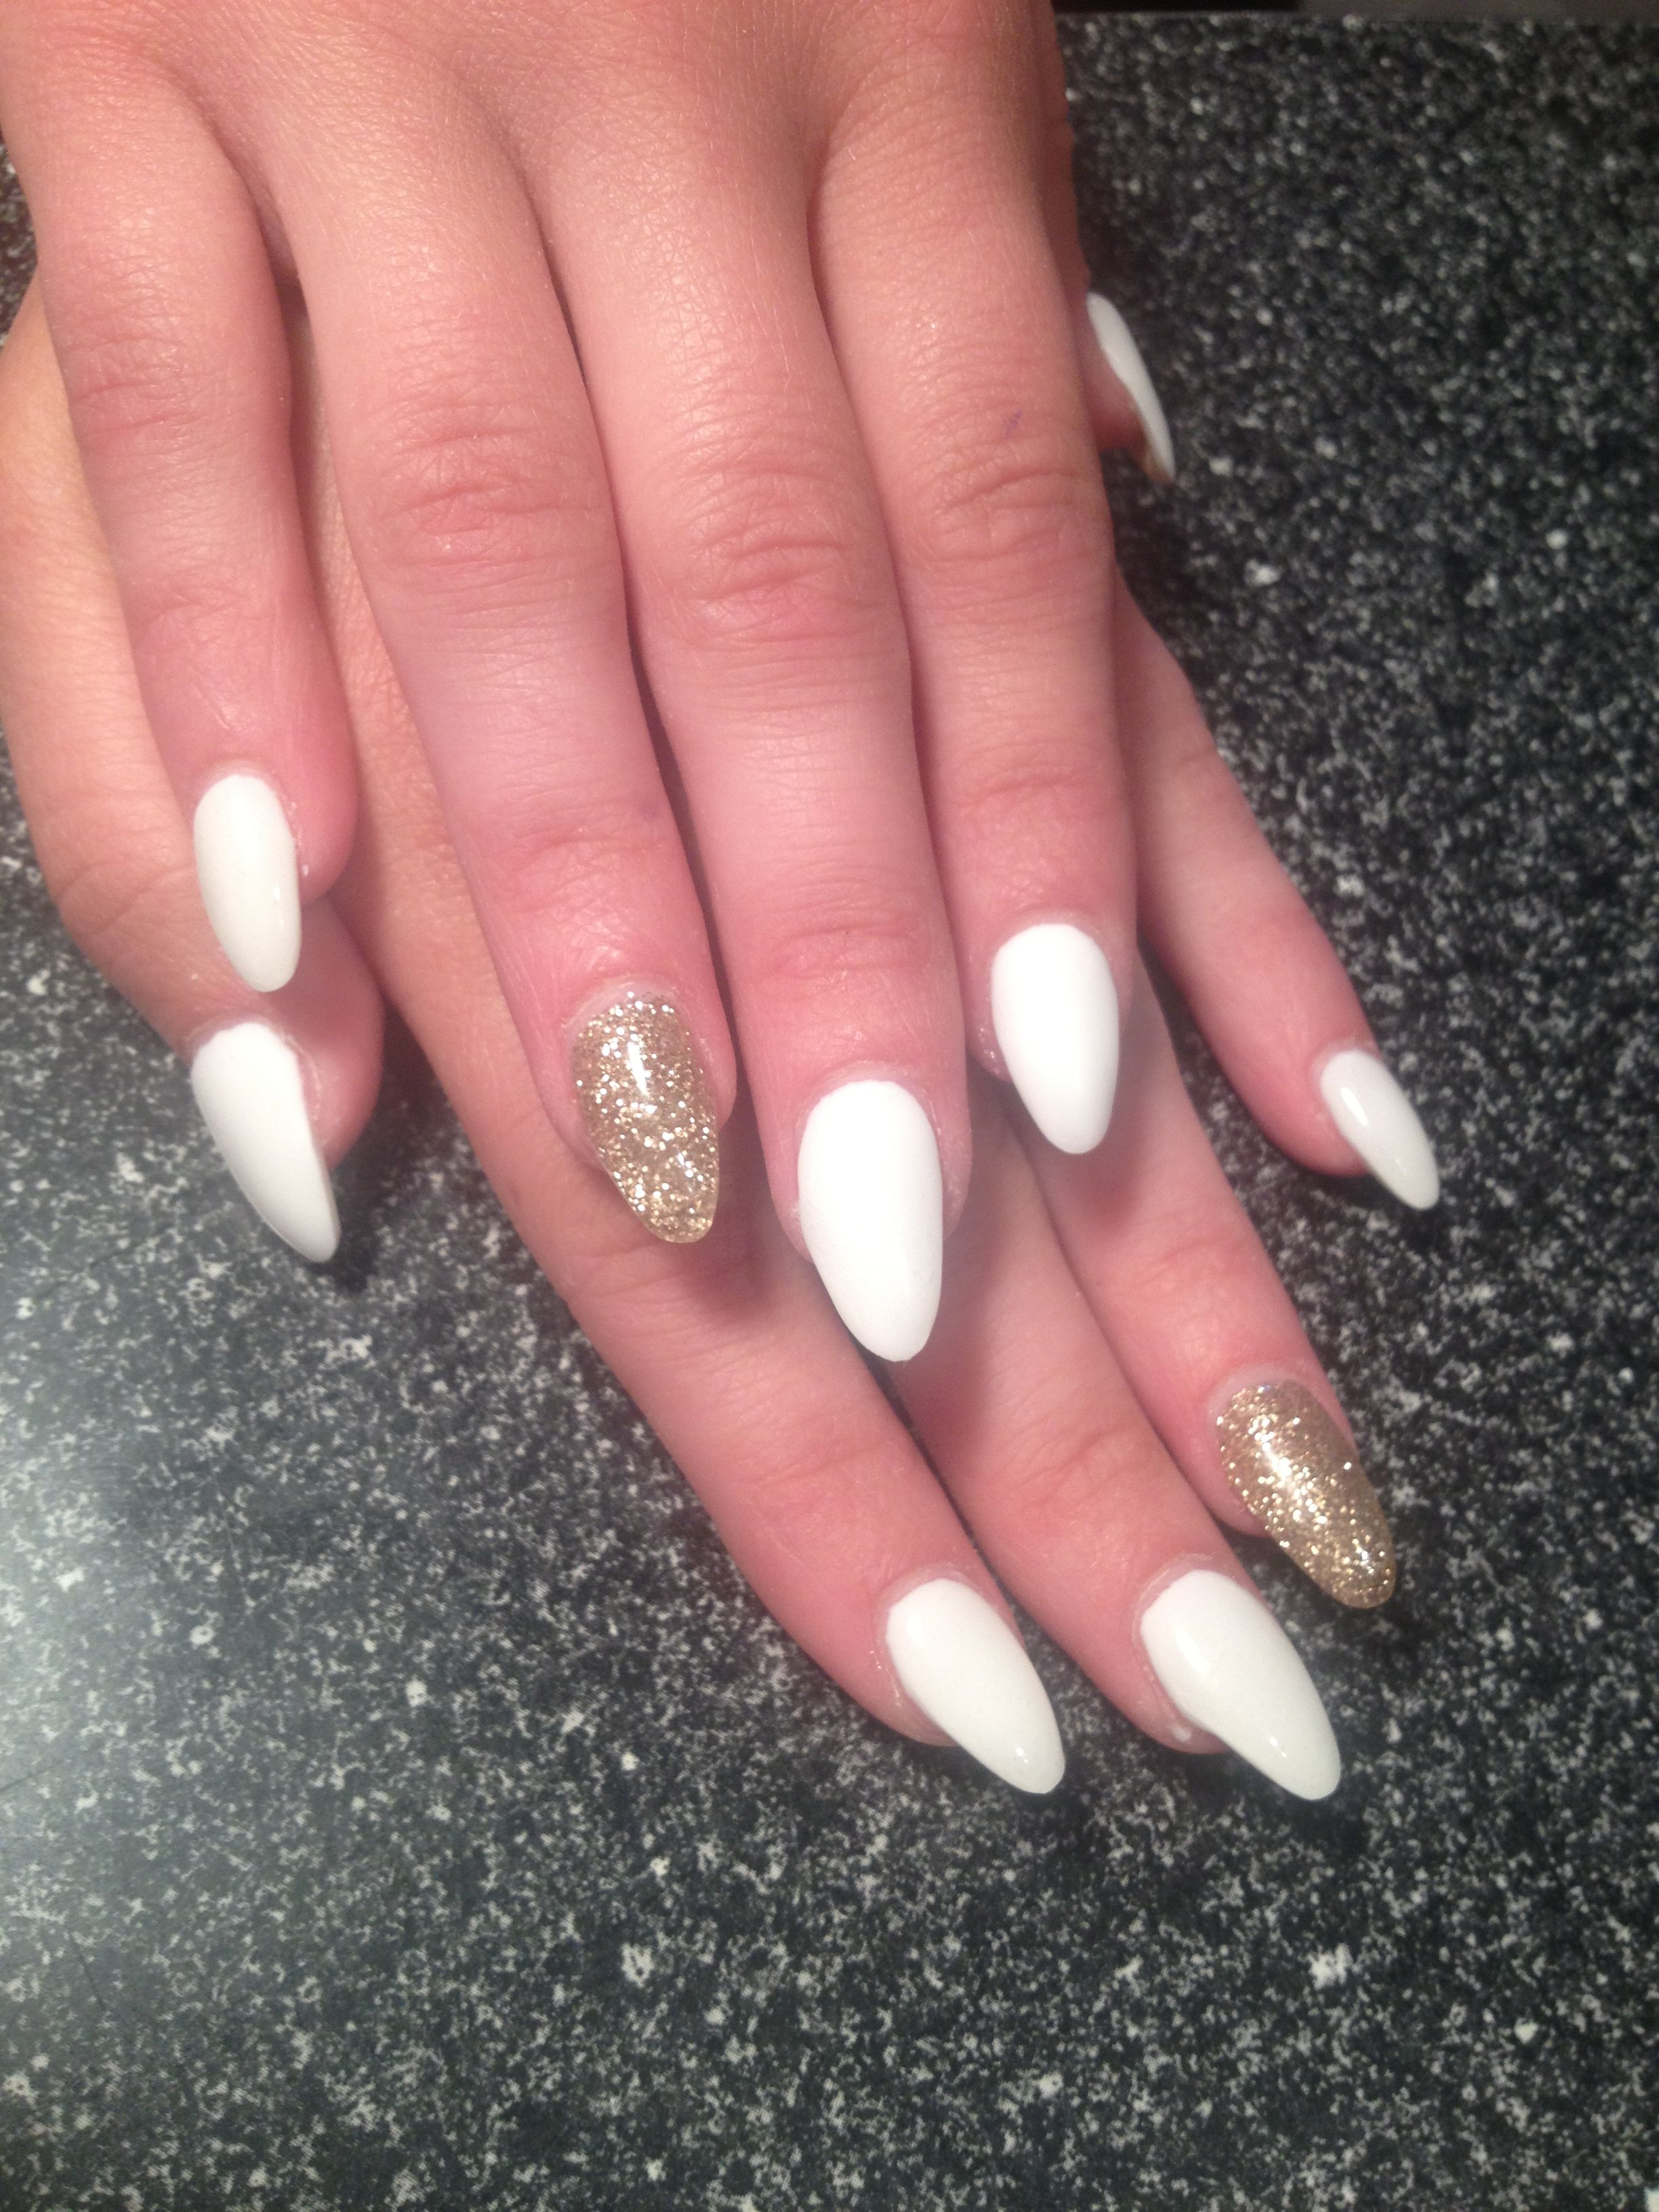 Pin By Imani Harris On Nails Acrylic Nails Almond Shape Gel Nails Glitter Gel Nails